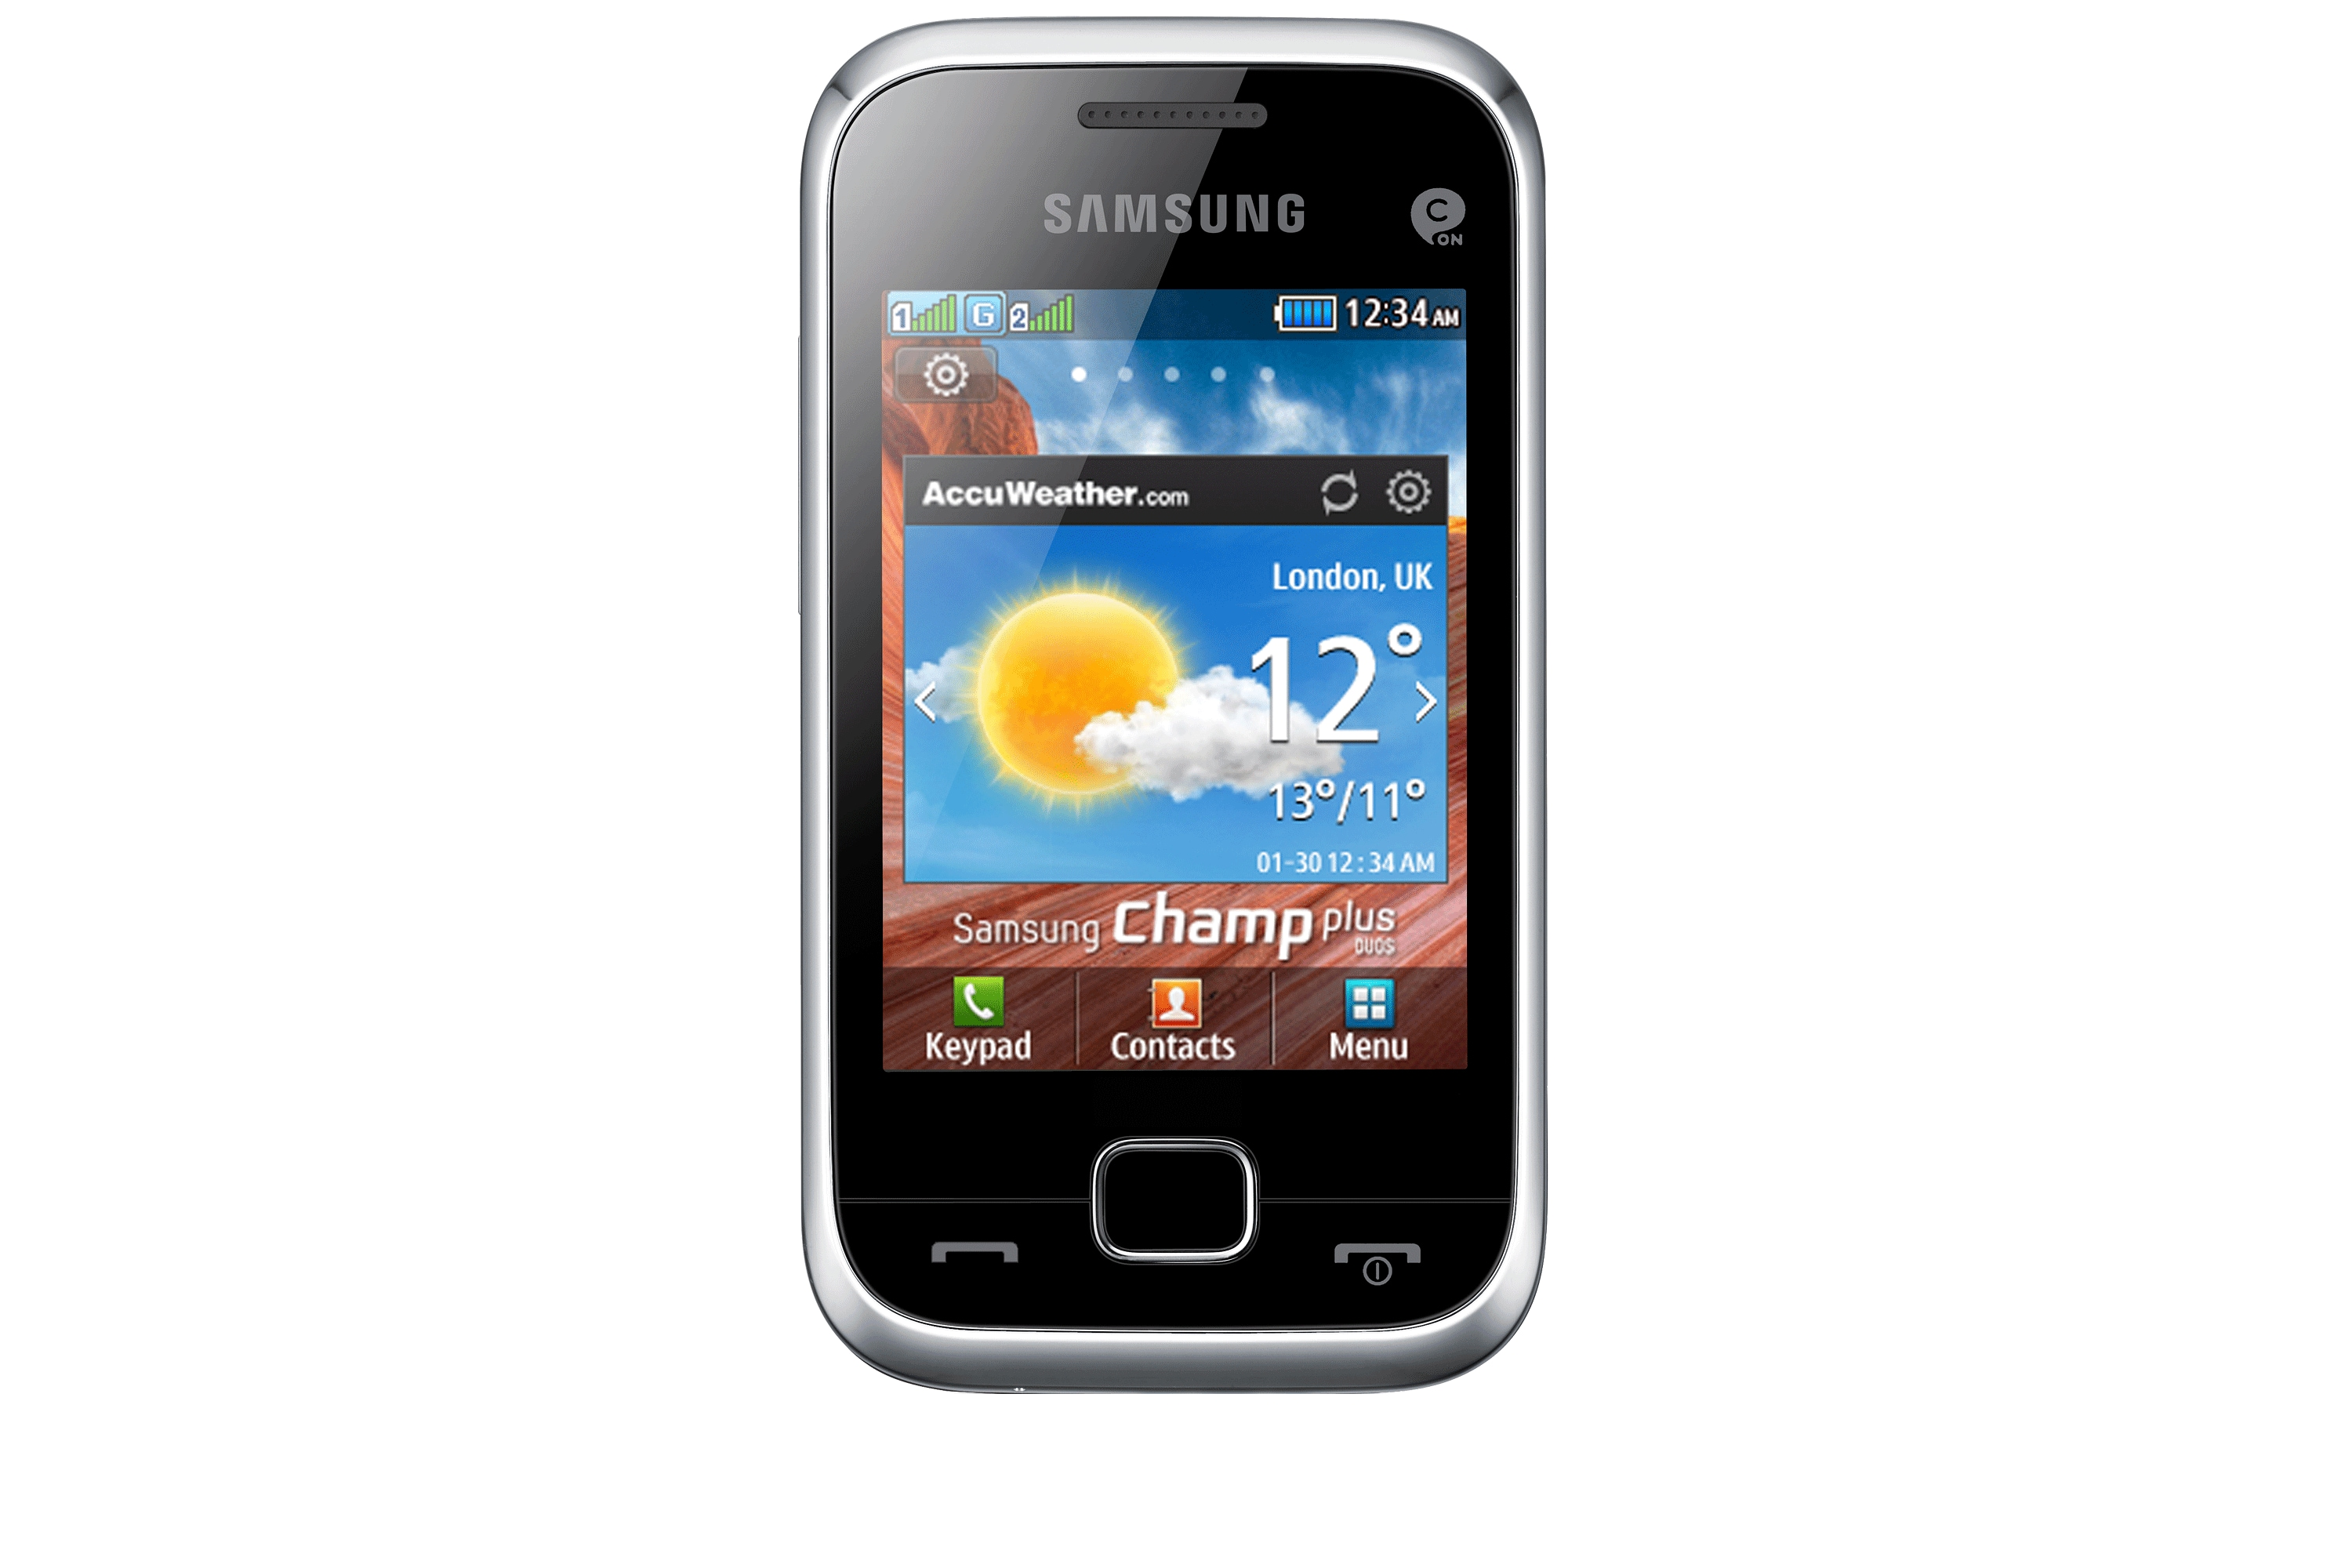 GT-C3310 Samsung Champ Deluxe